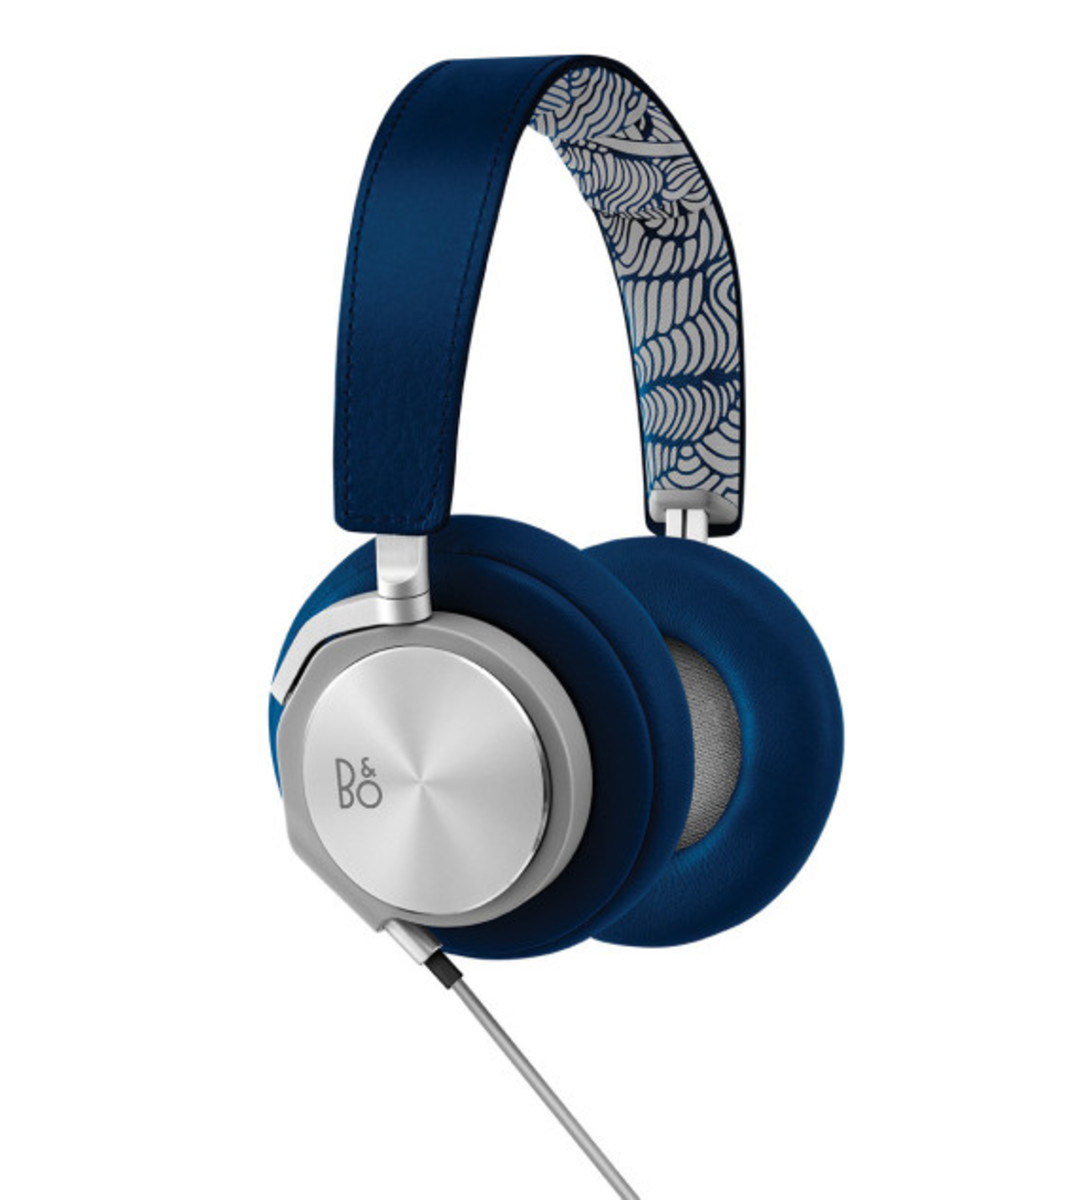 bang-and-olufsen-beoplay-pepsi-street-art-headphones-collection-06